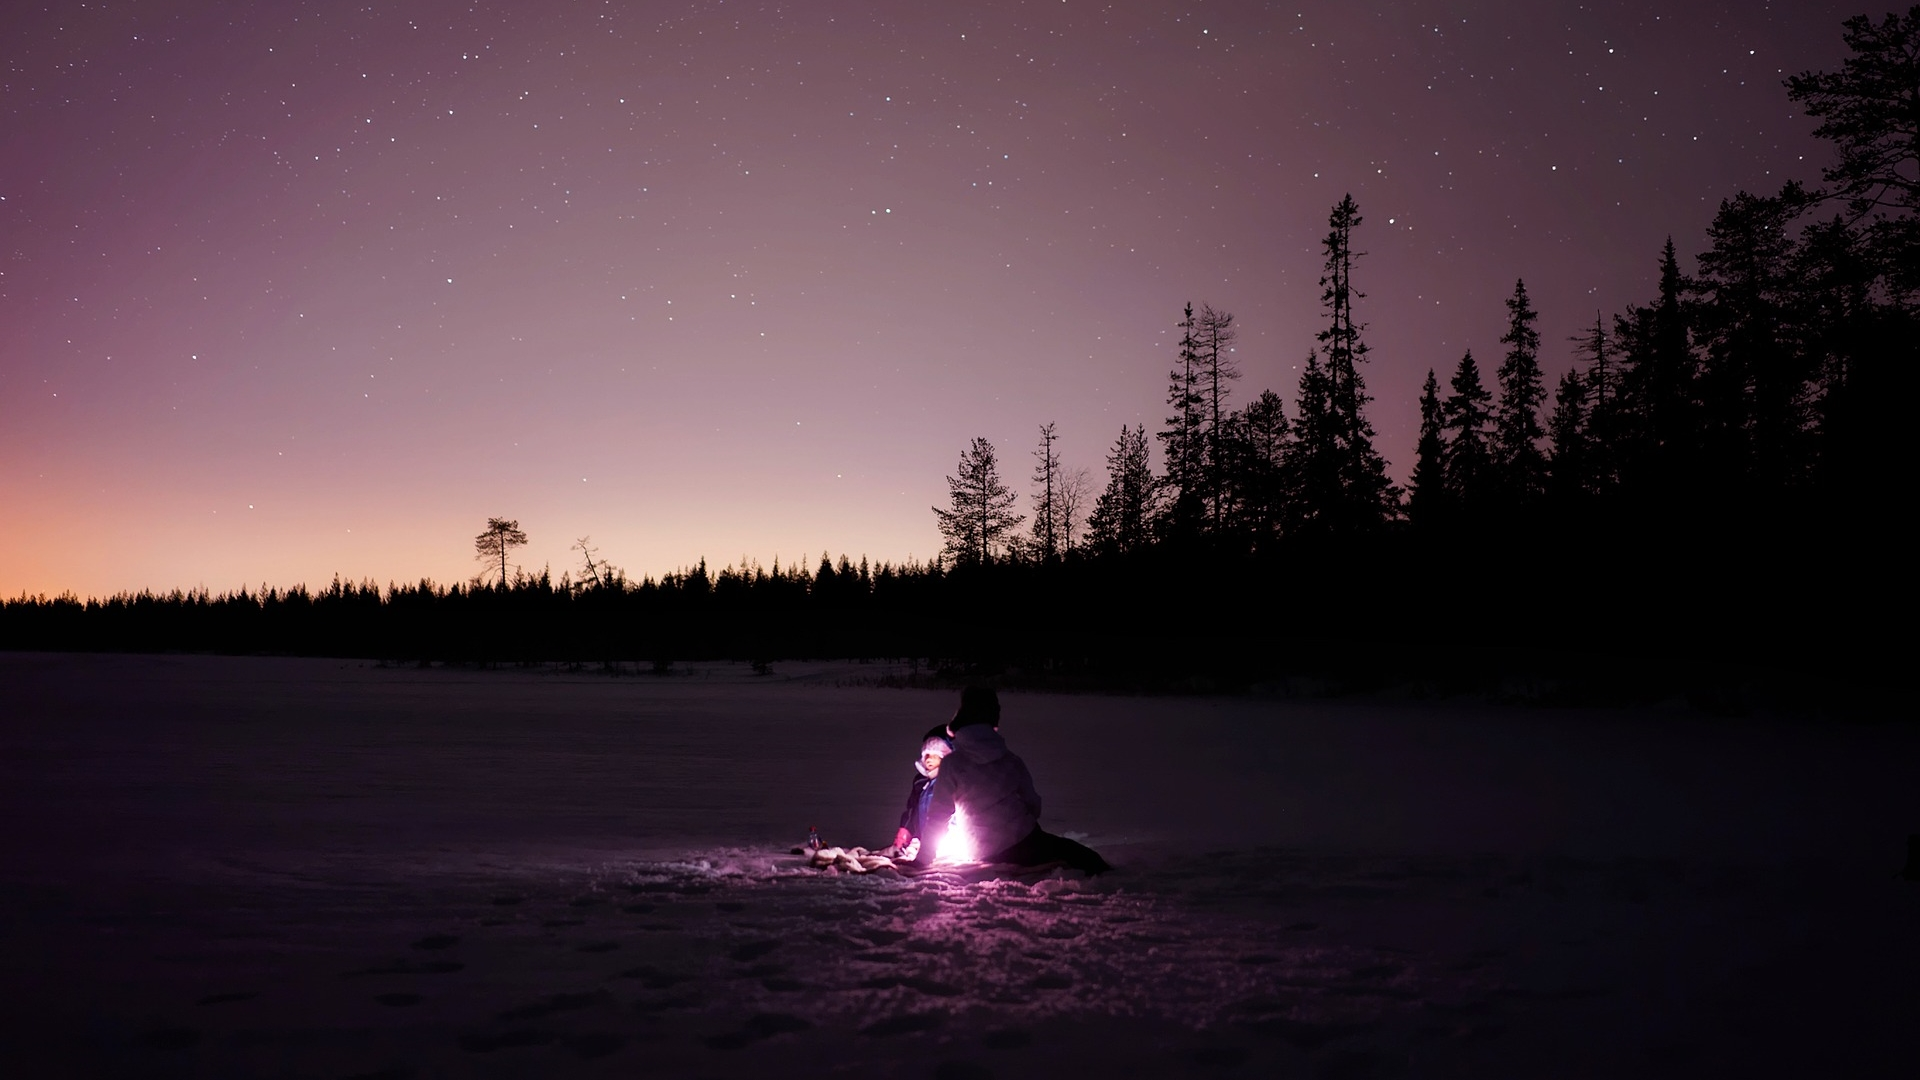 A campfire in the woods on a snowy night with a faint image of someone sitting next to it.